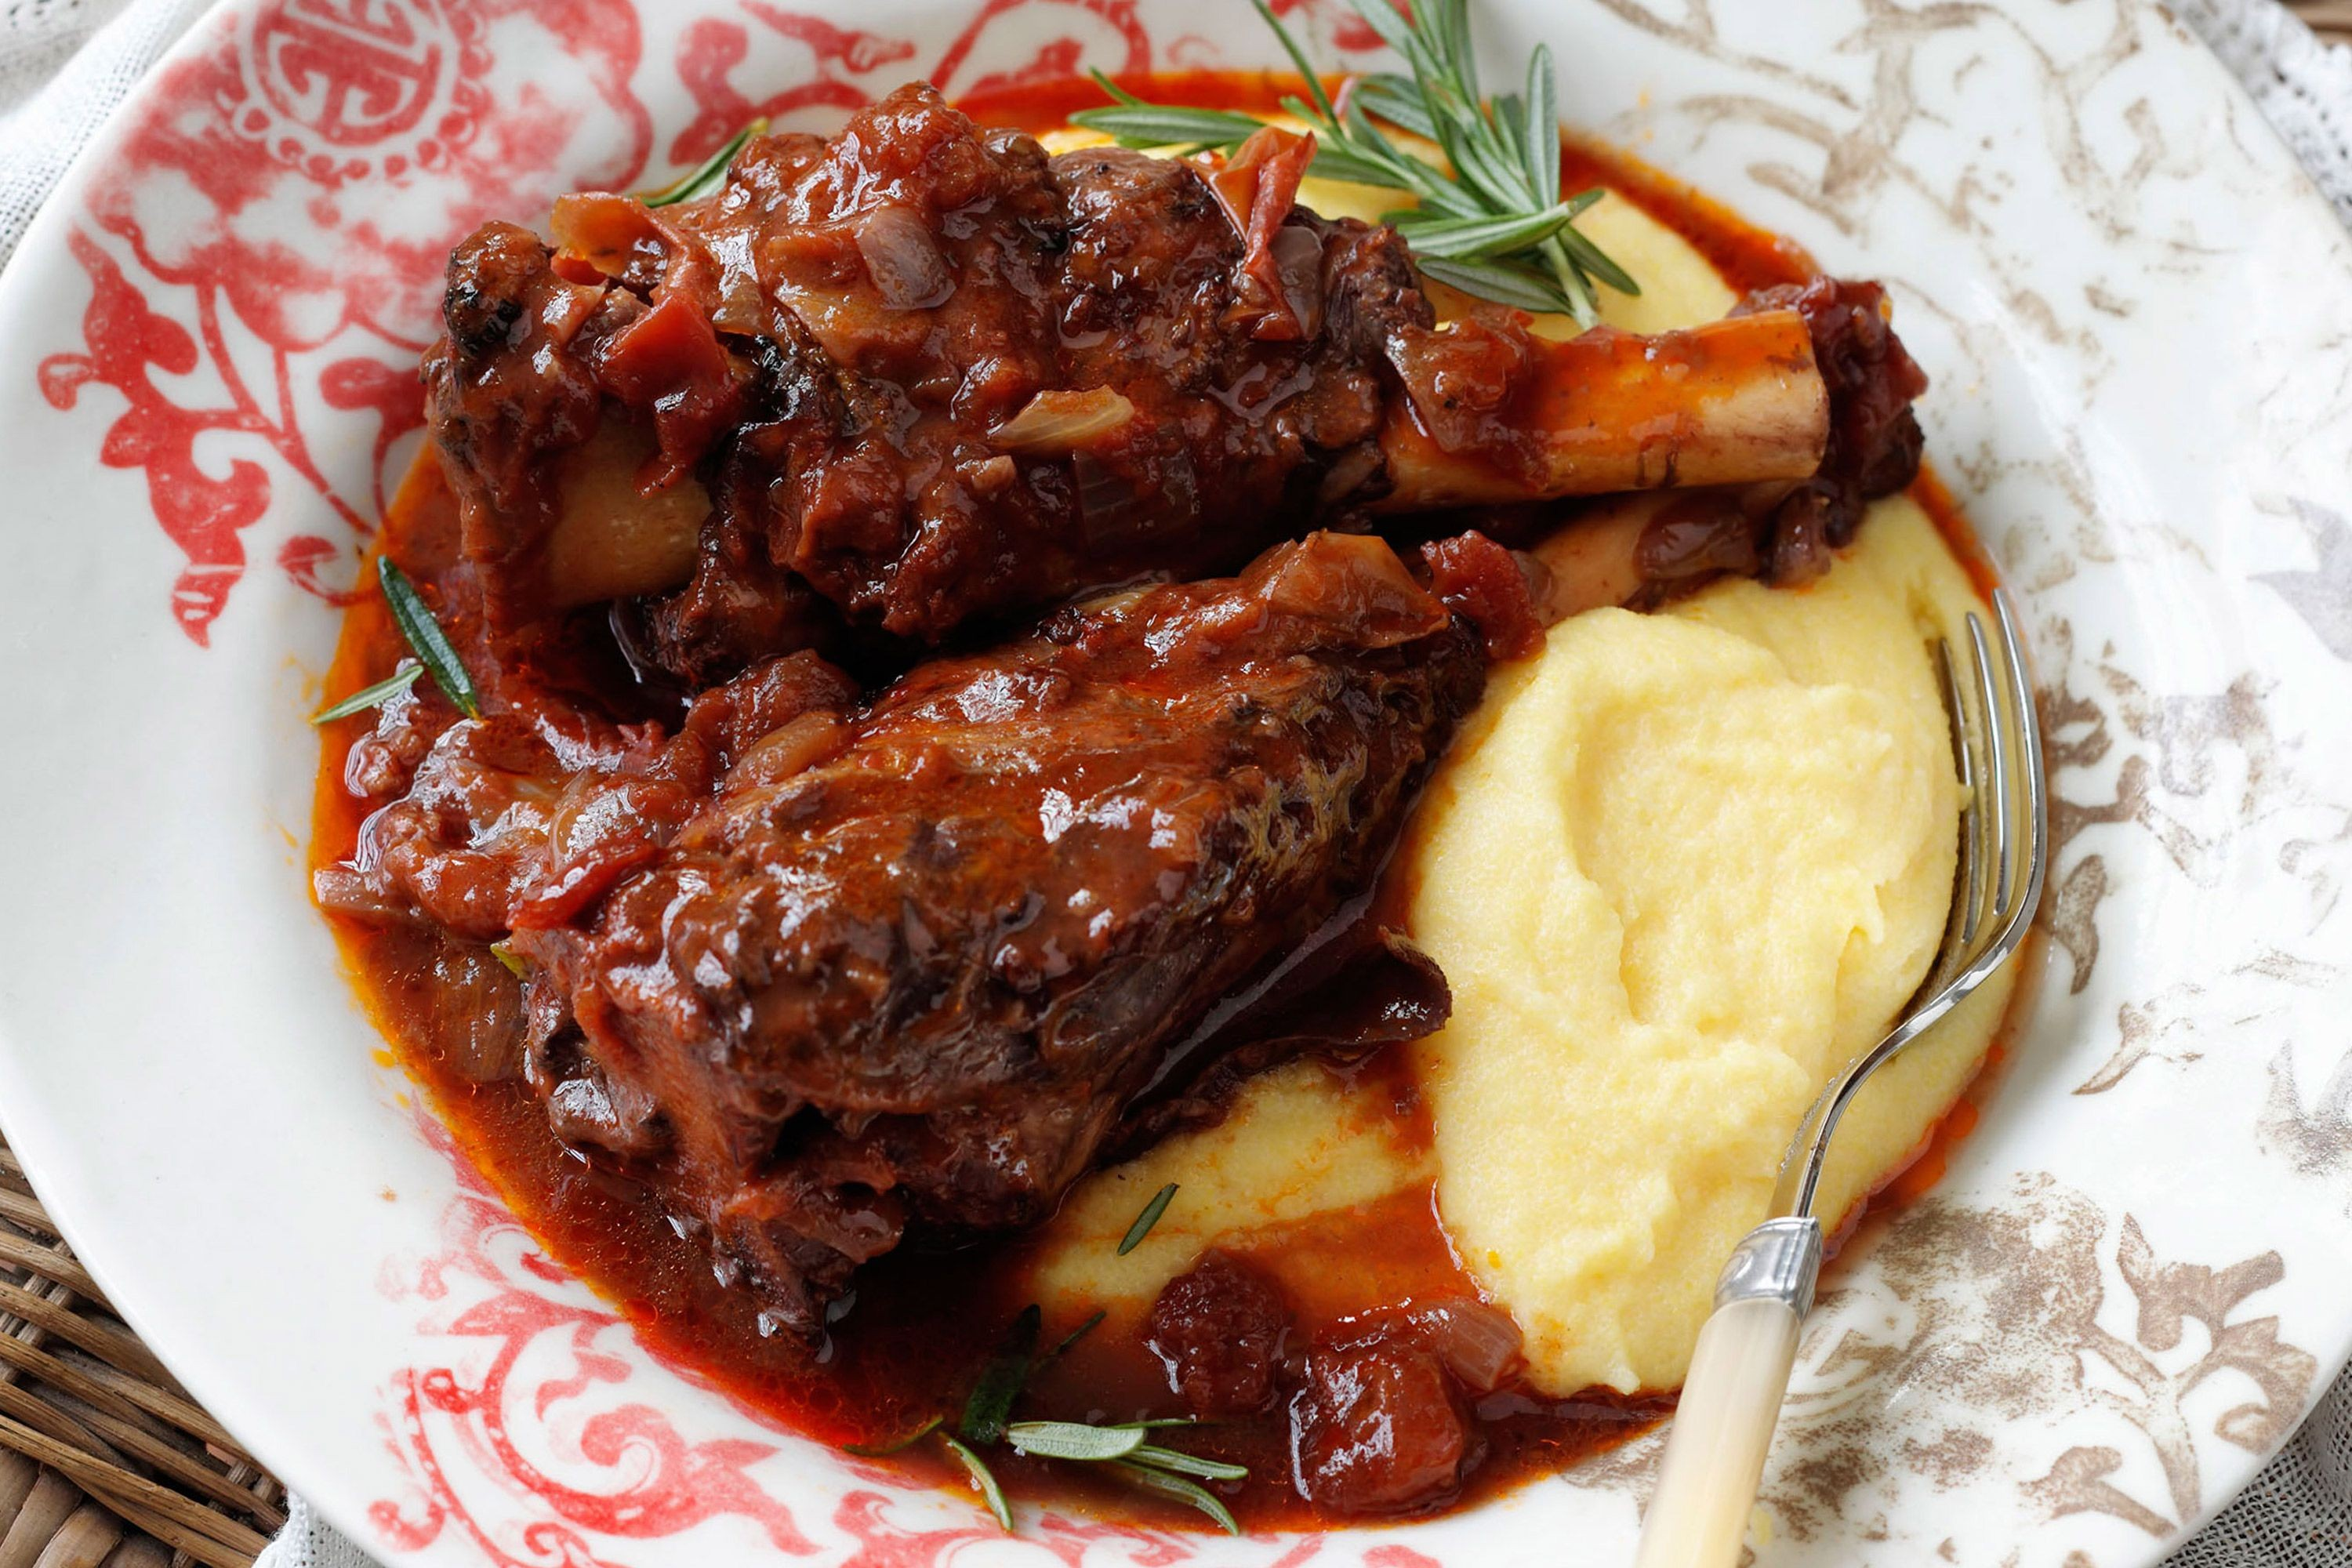 rosemary-lamb-shanks-braised-in-red-wine-79480-1